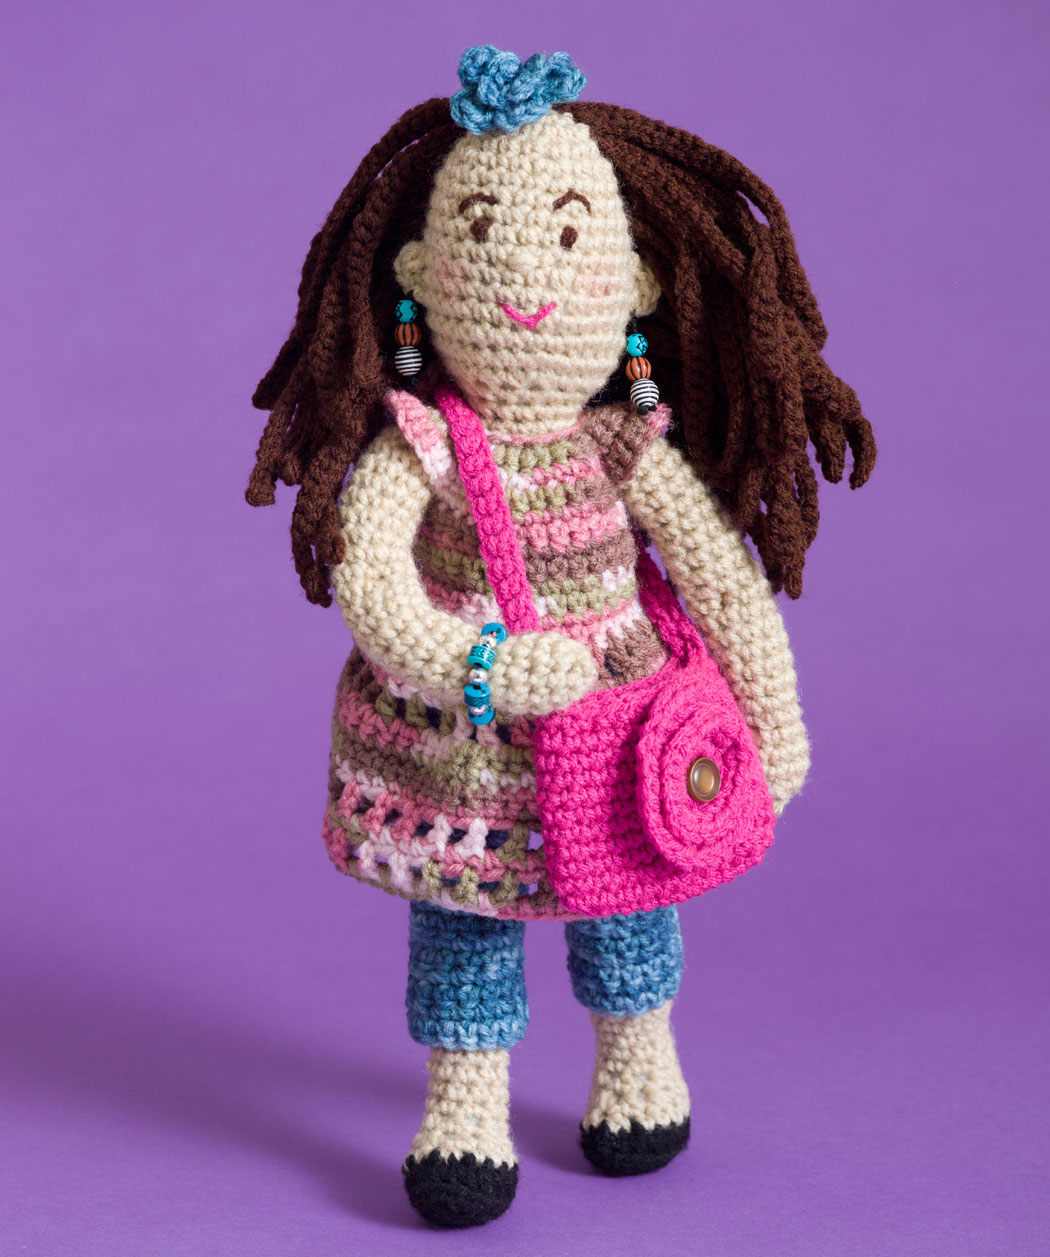 Crochet Pattern Human Doll : 2000 Free Amigurumi Patterns: Free Fashionista Farrah Doll ...